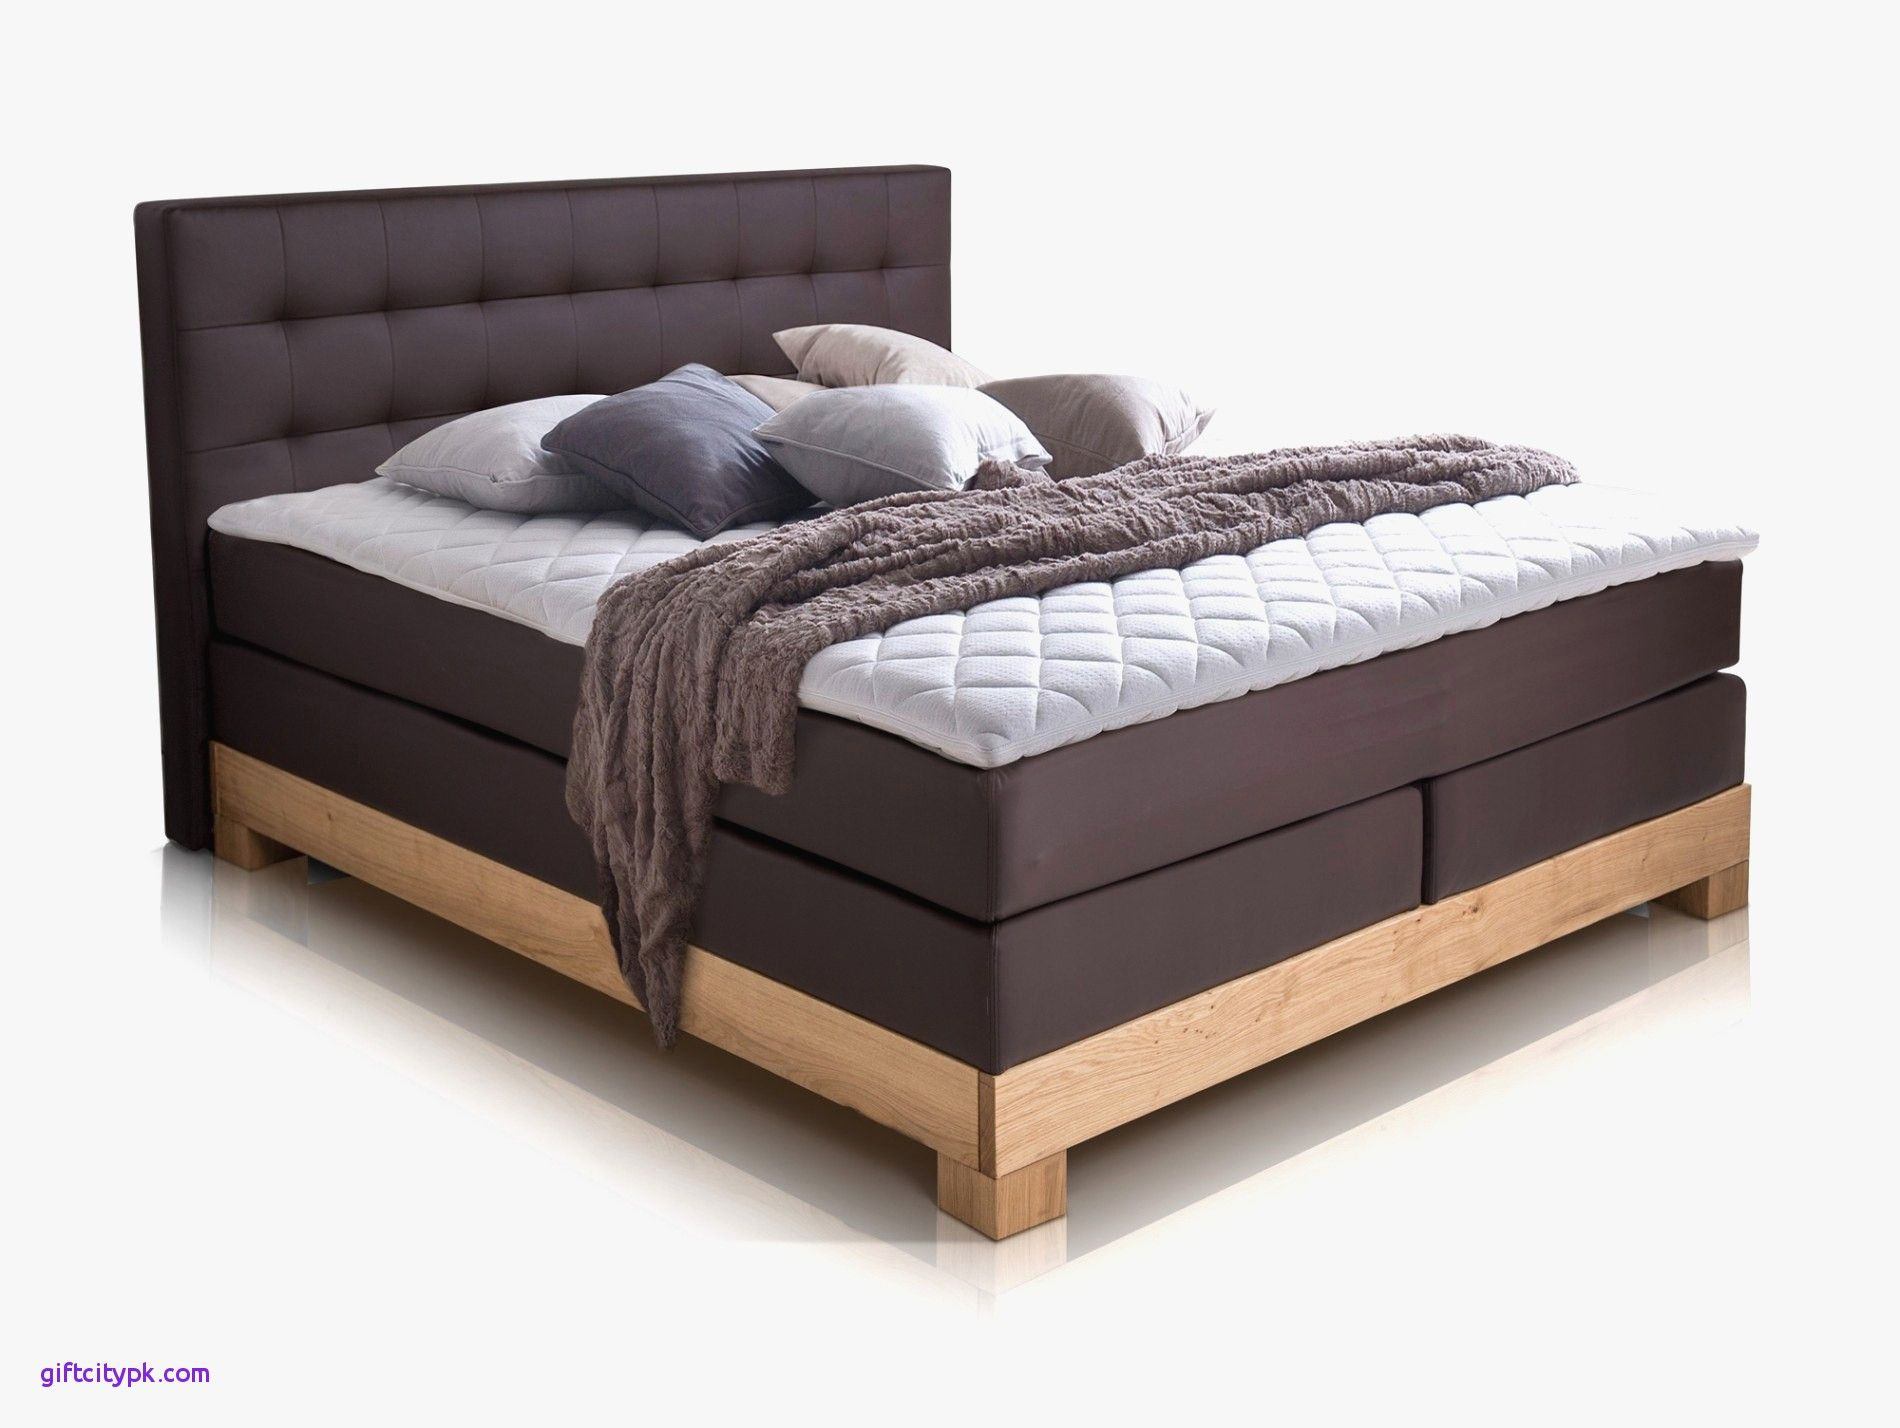 30 Elegant King Bed Frame With Box Spring Ideas Full Bed Frame